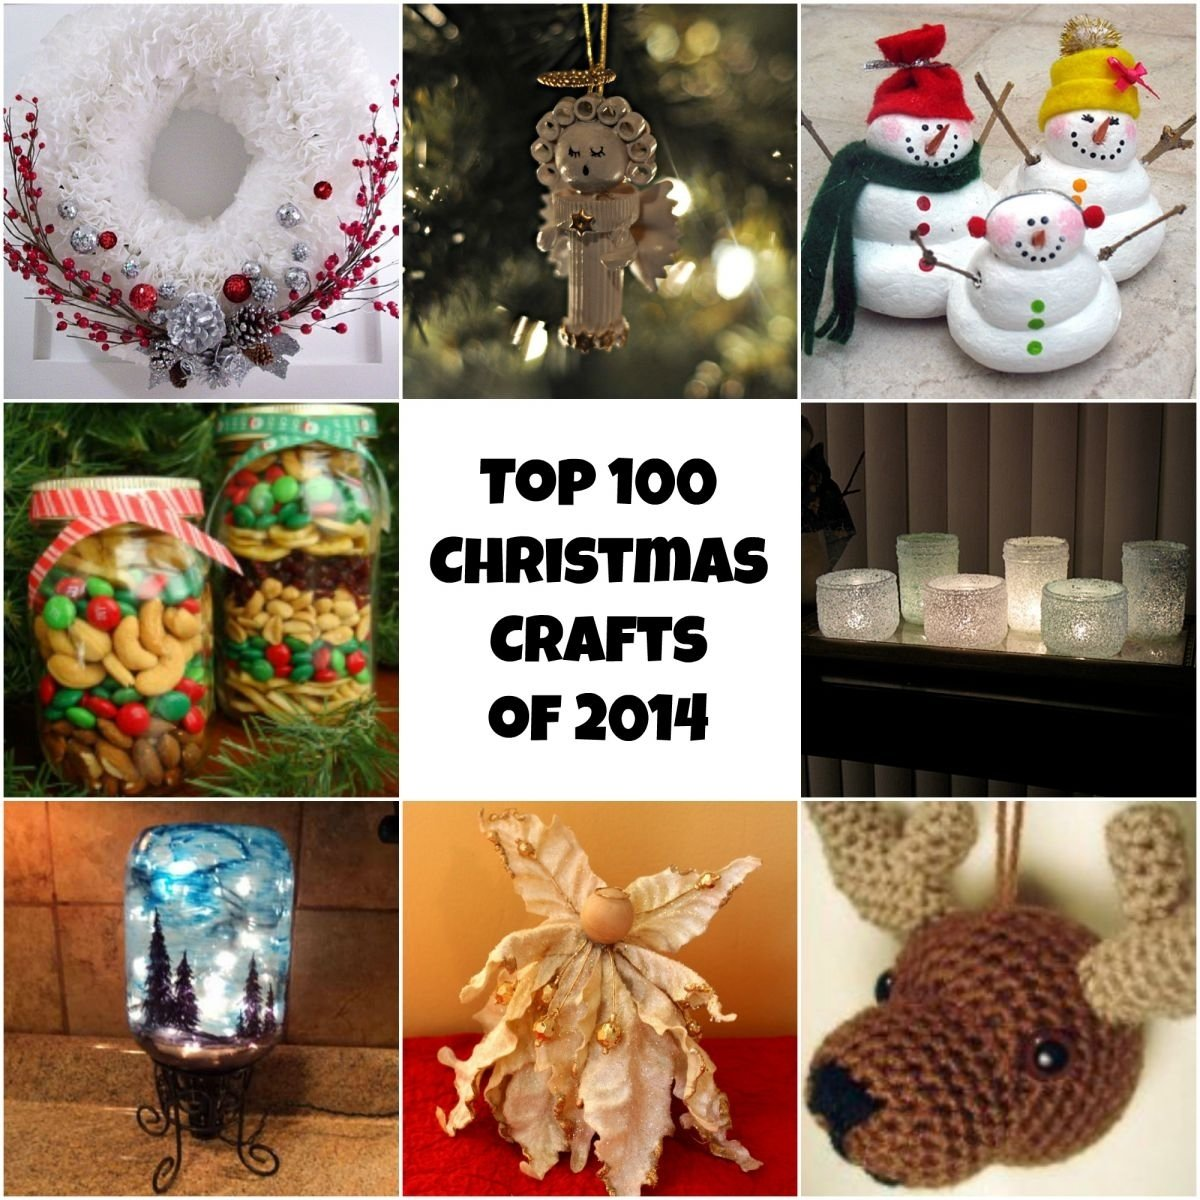 10 Great Great Homemade Christmas Gift Ideas top 100 diy christmas crafts of 2014 homemade christmas ornaments 12 2020